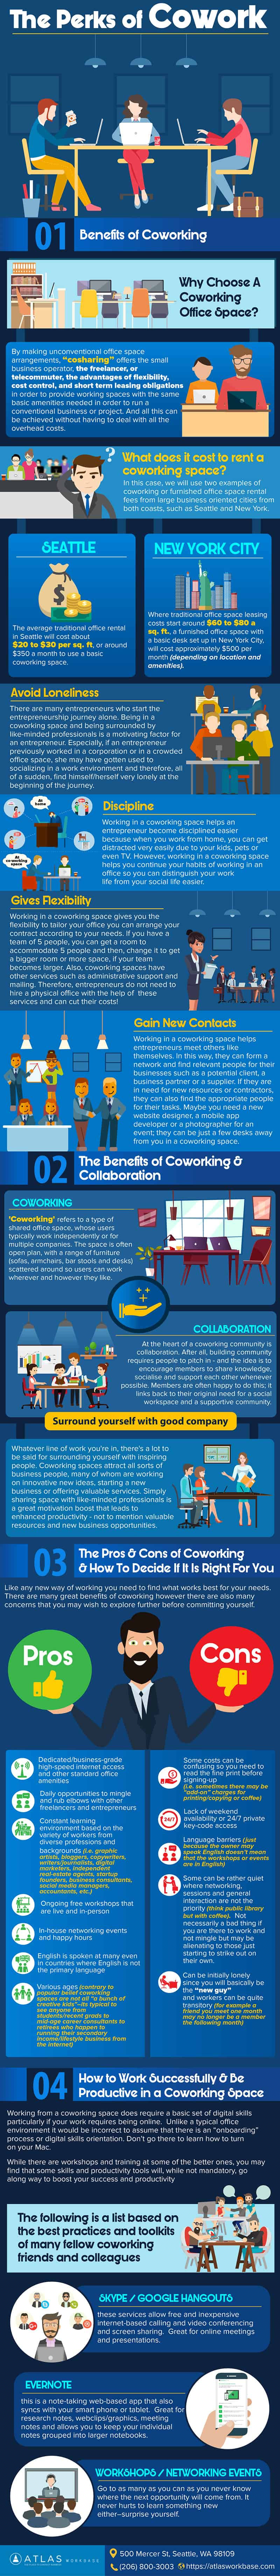 The Perks of Cowork infographic